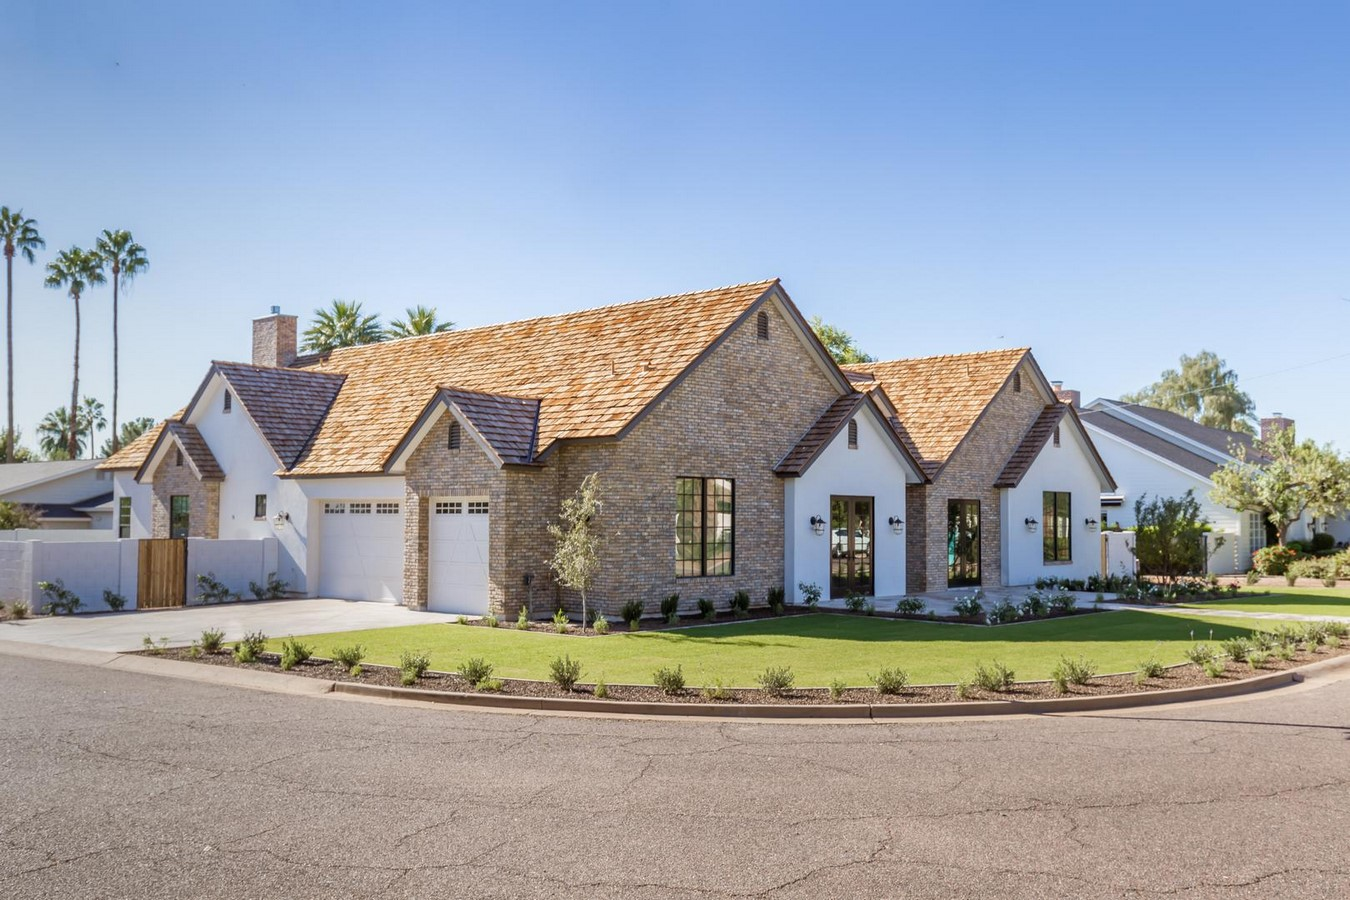 Architects in Mesa - Top 15 Architects in Mesa Sheet4